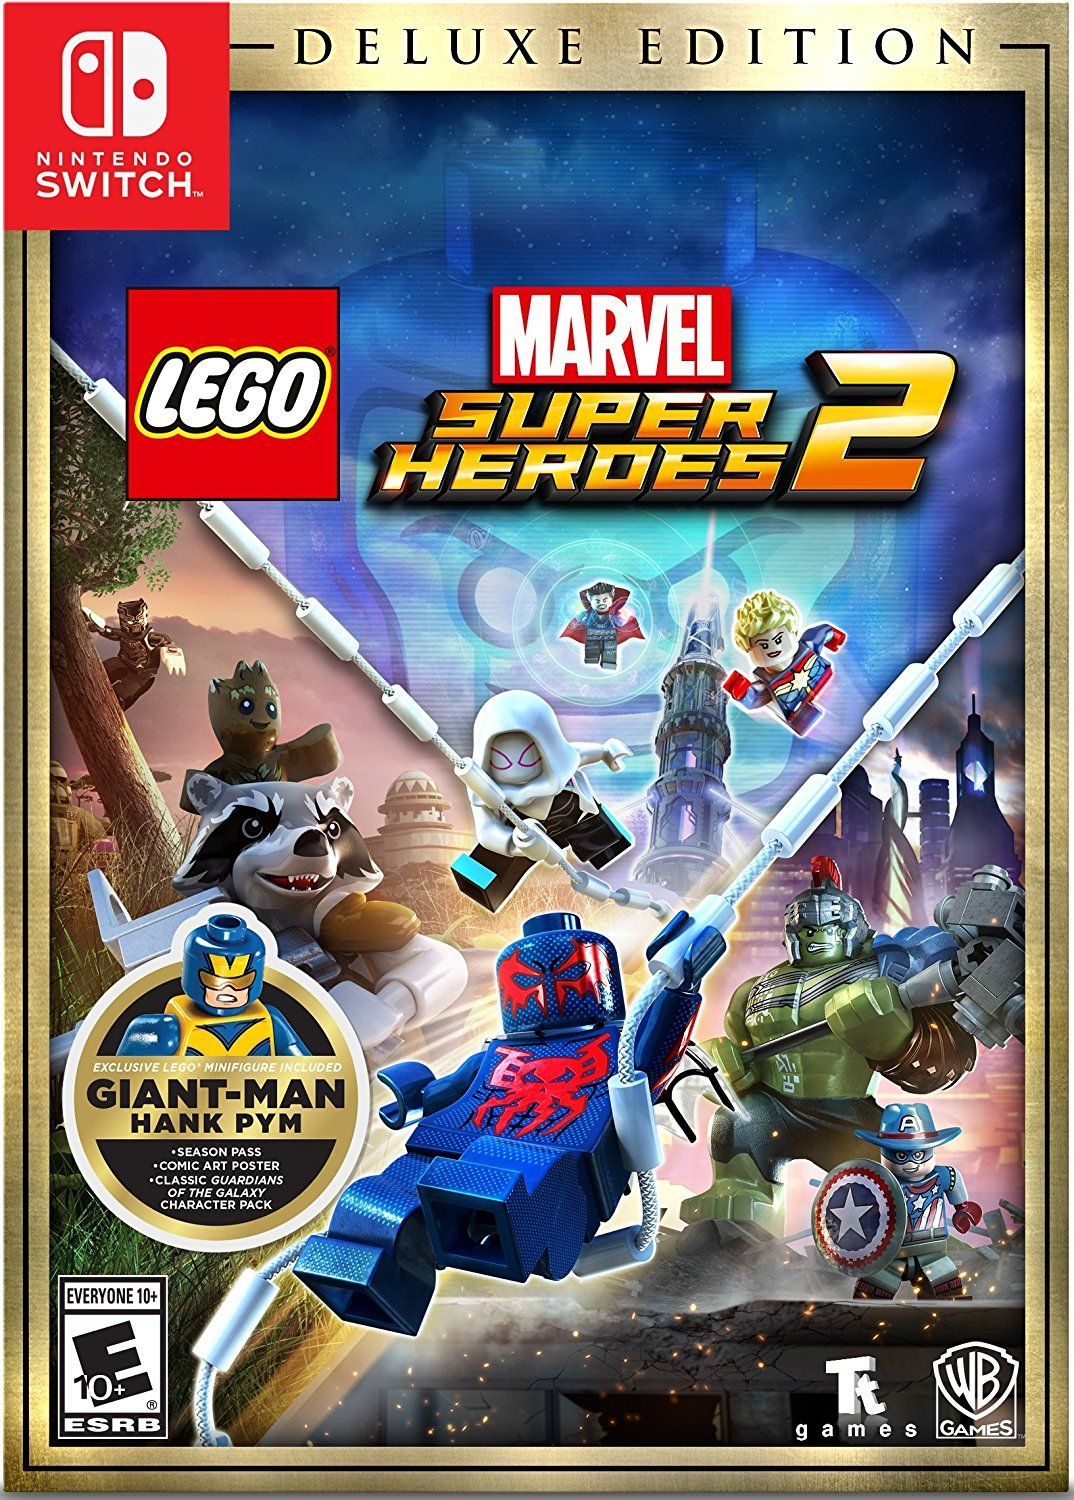 LEGO Marvel Super Heroes 2 Game Cover Nintendo Switch Deluxe | Video